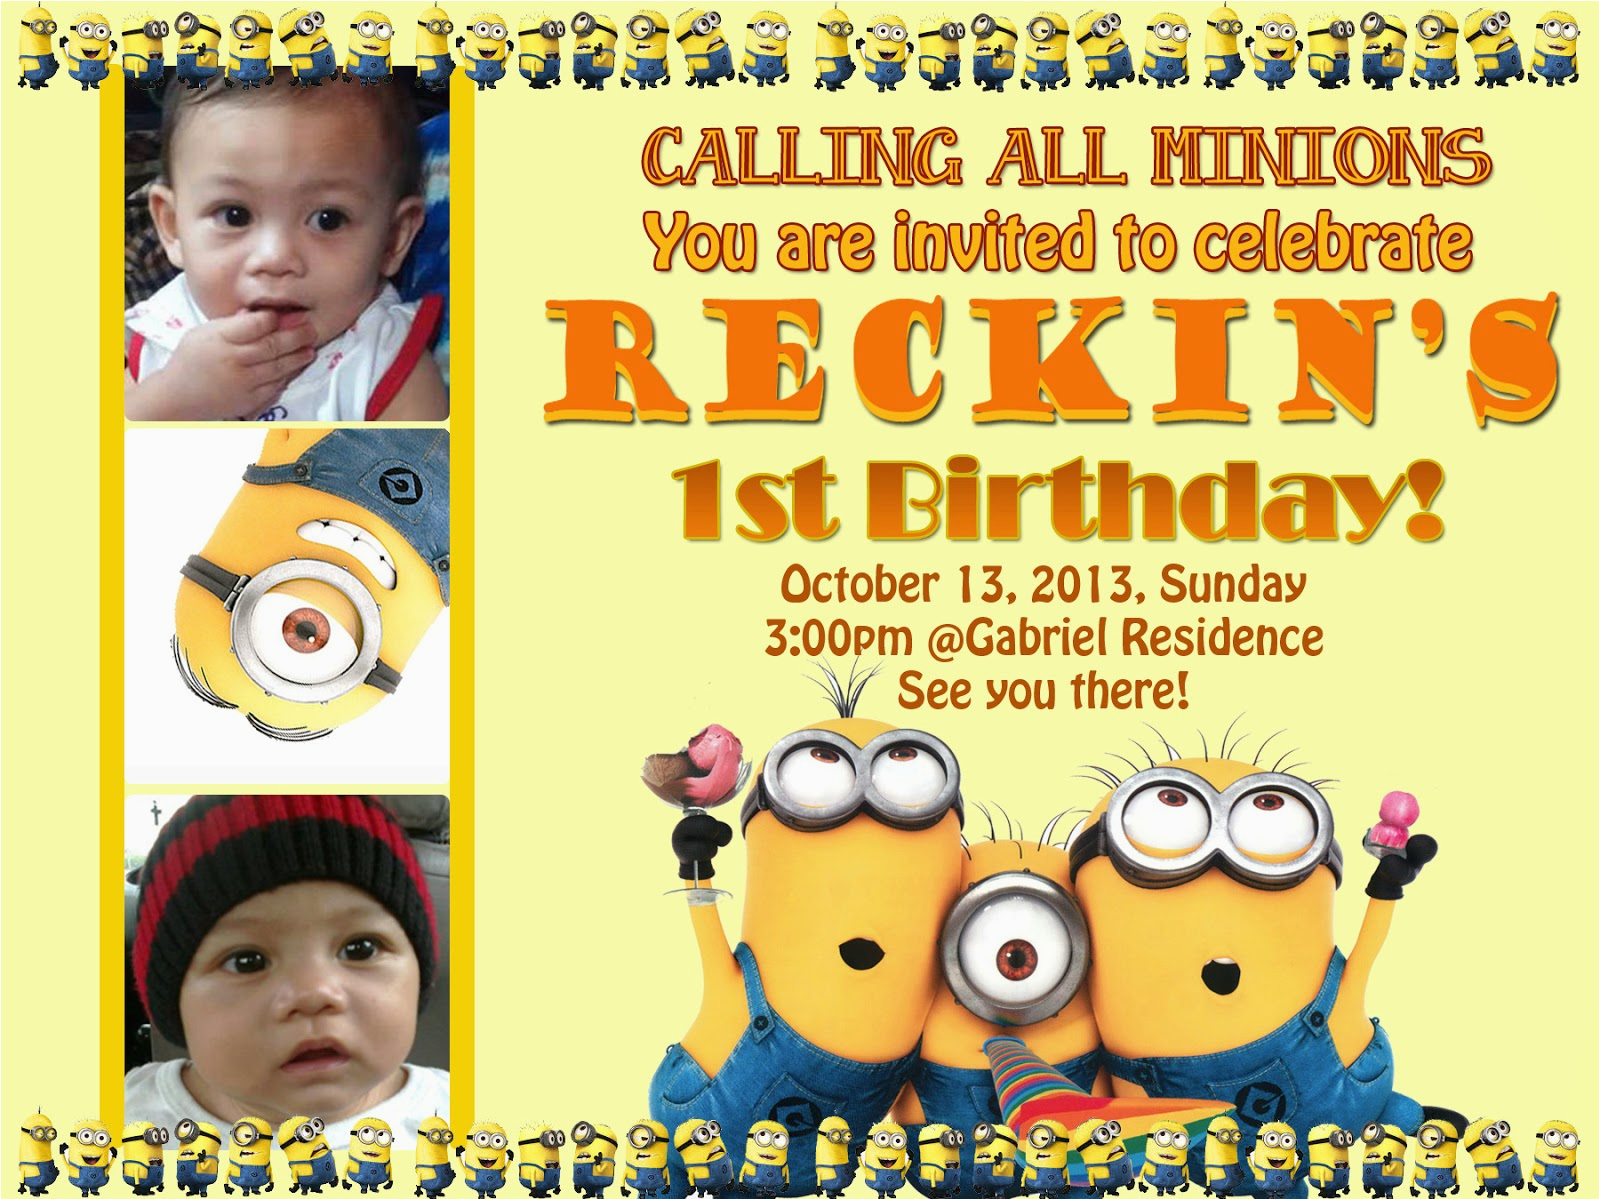 my nephew is turning one this october